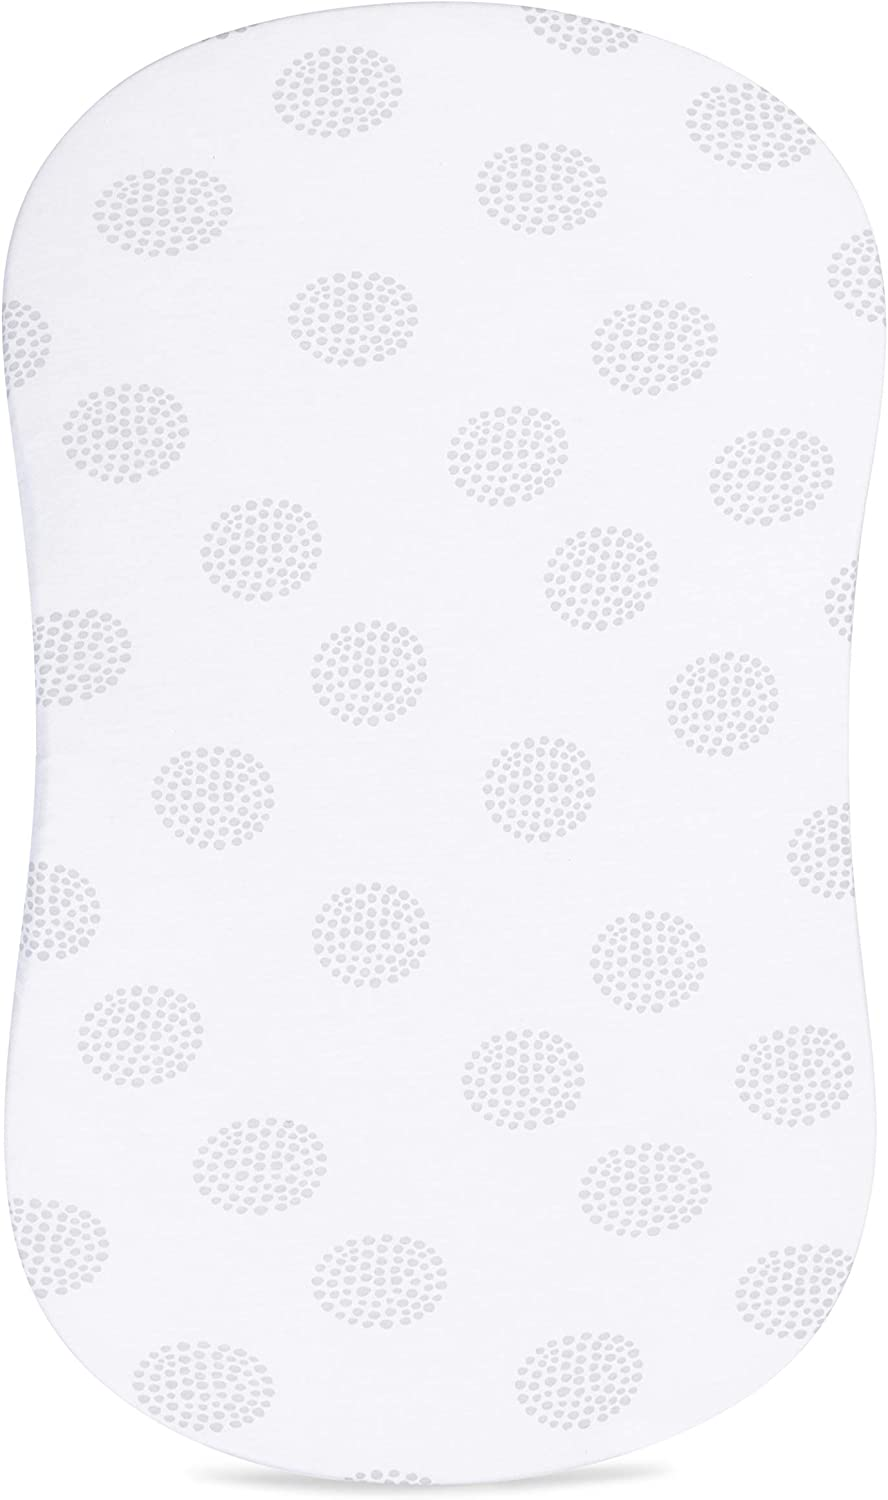 Bassinet Sheet 2-Pack Combed Jersey Cotton for Baby Boy or Baby Girl Elys /& Co Grey Dottie